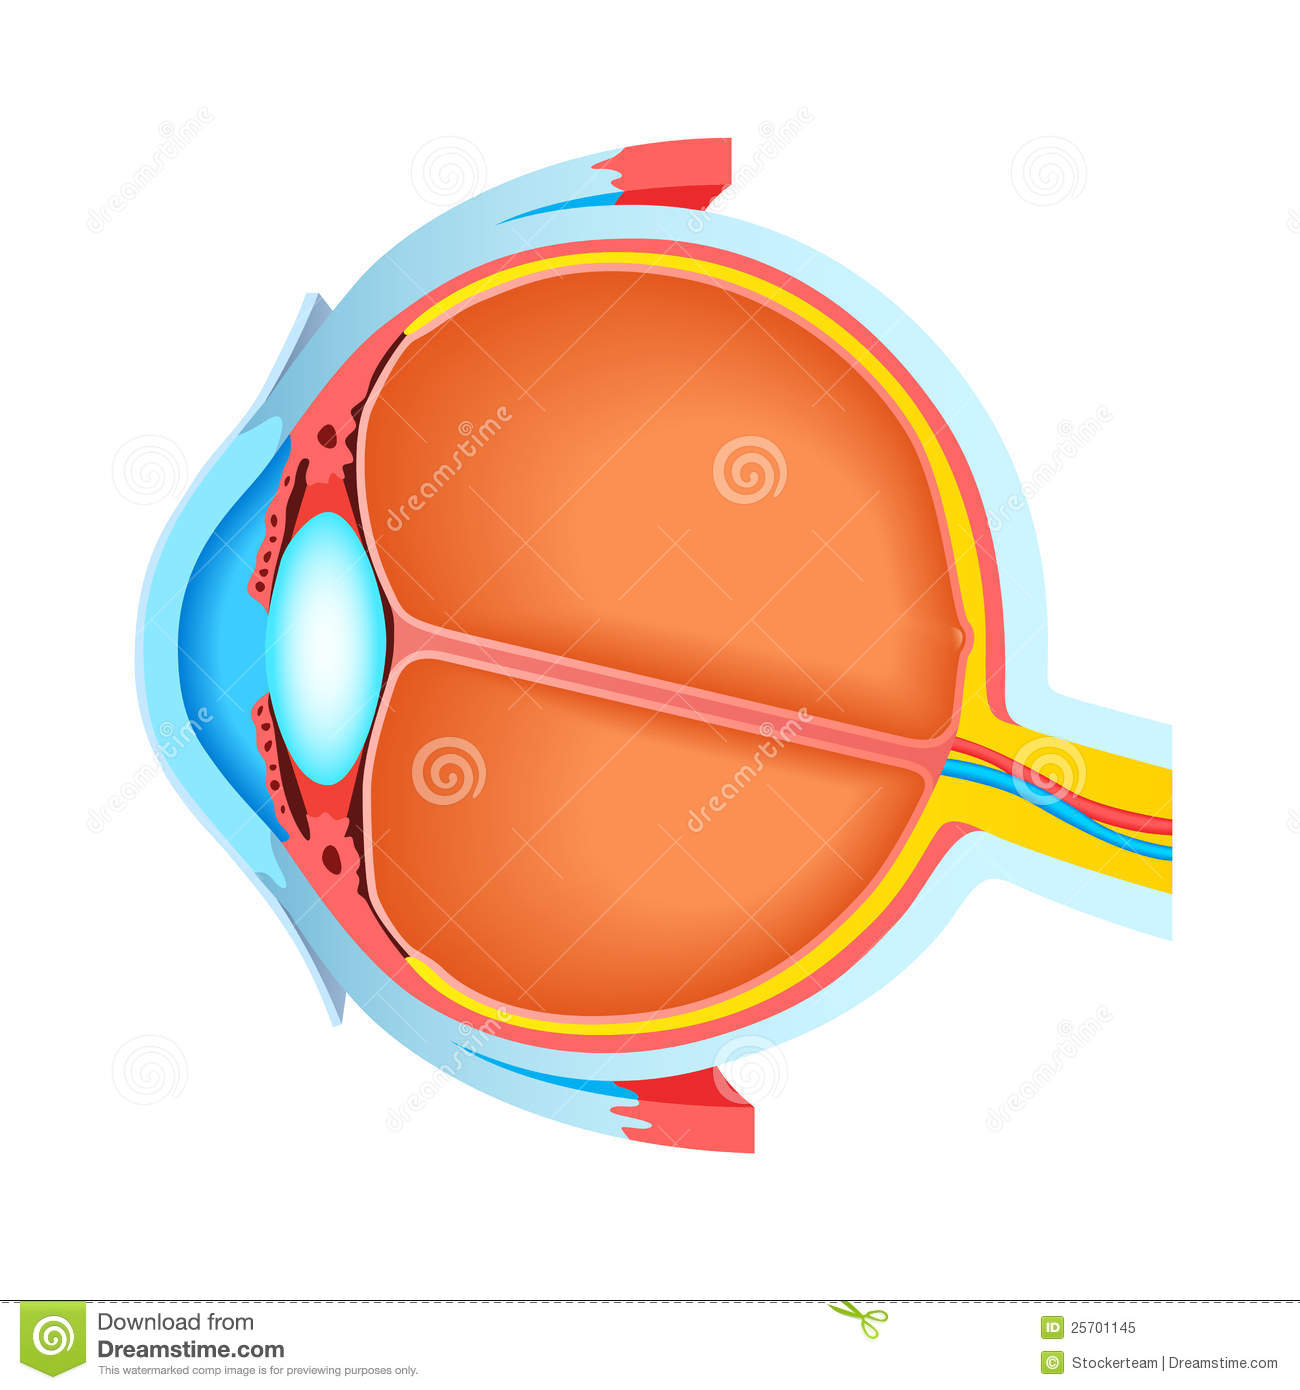 Cross section of human eye stock illustration illustration of cross section of human eye pooptronica